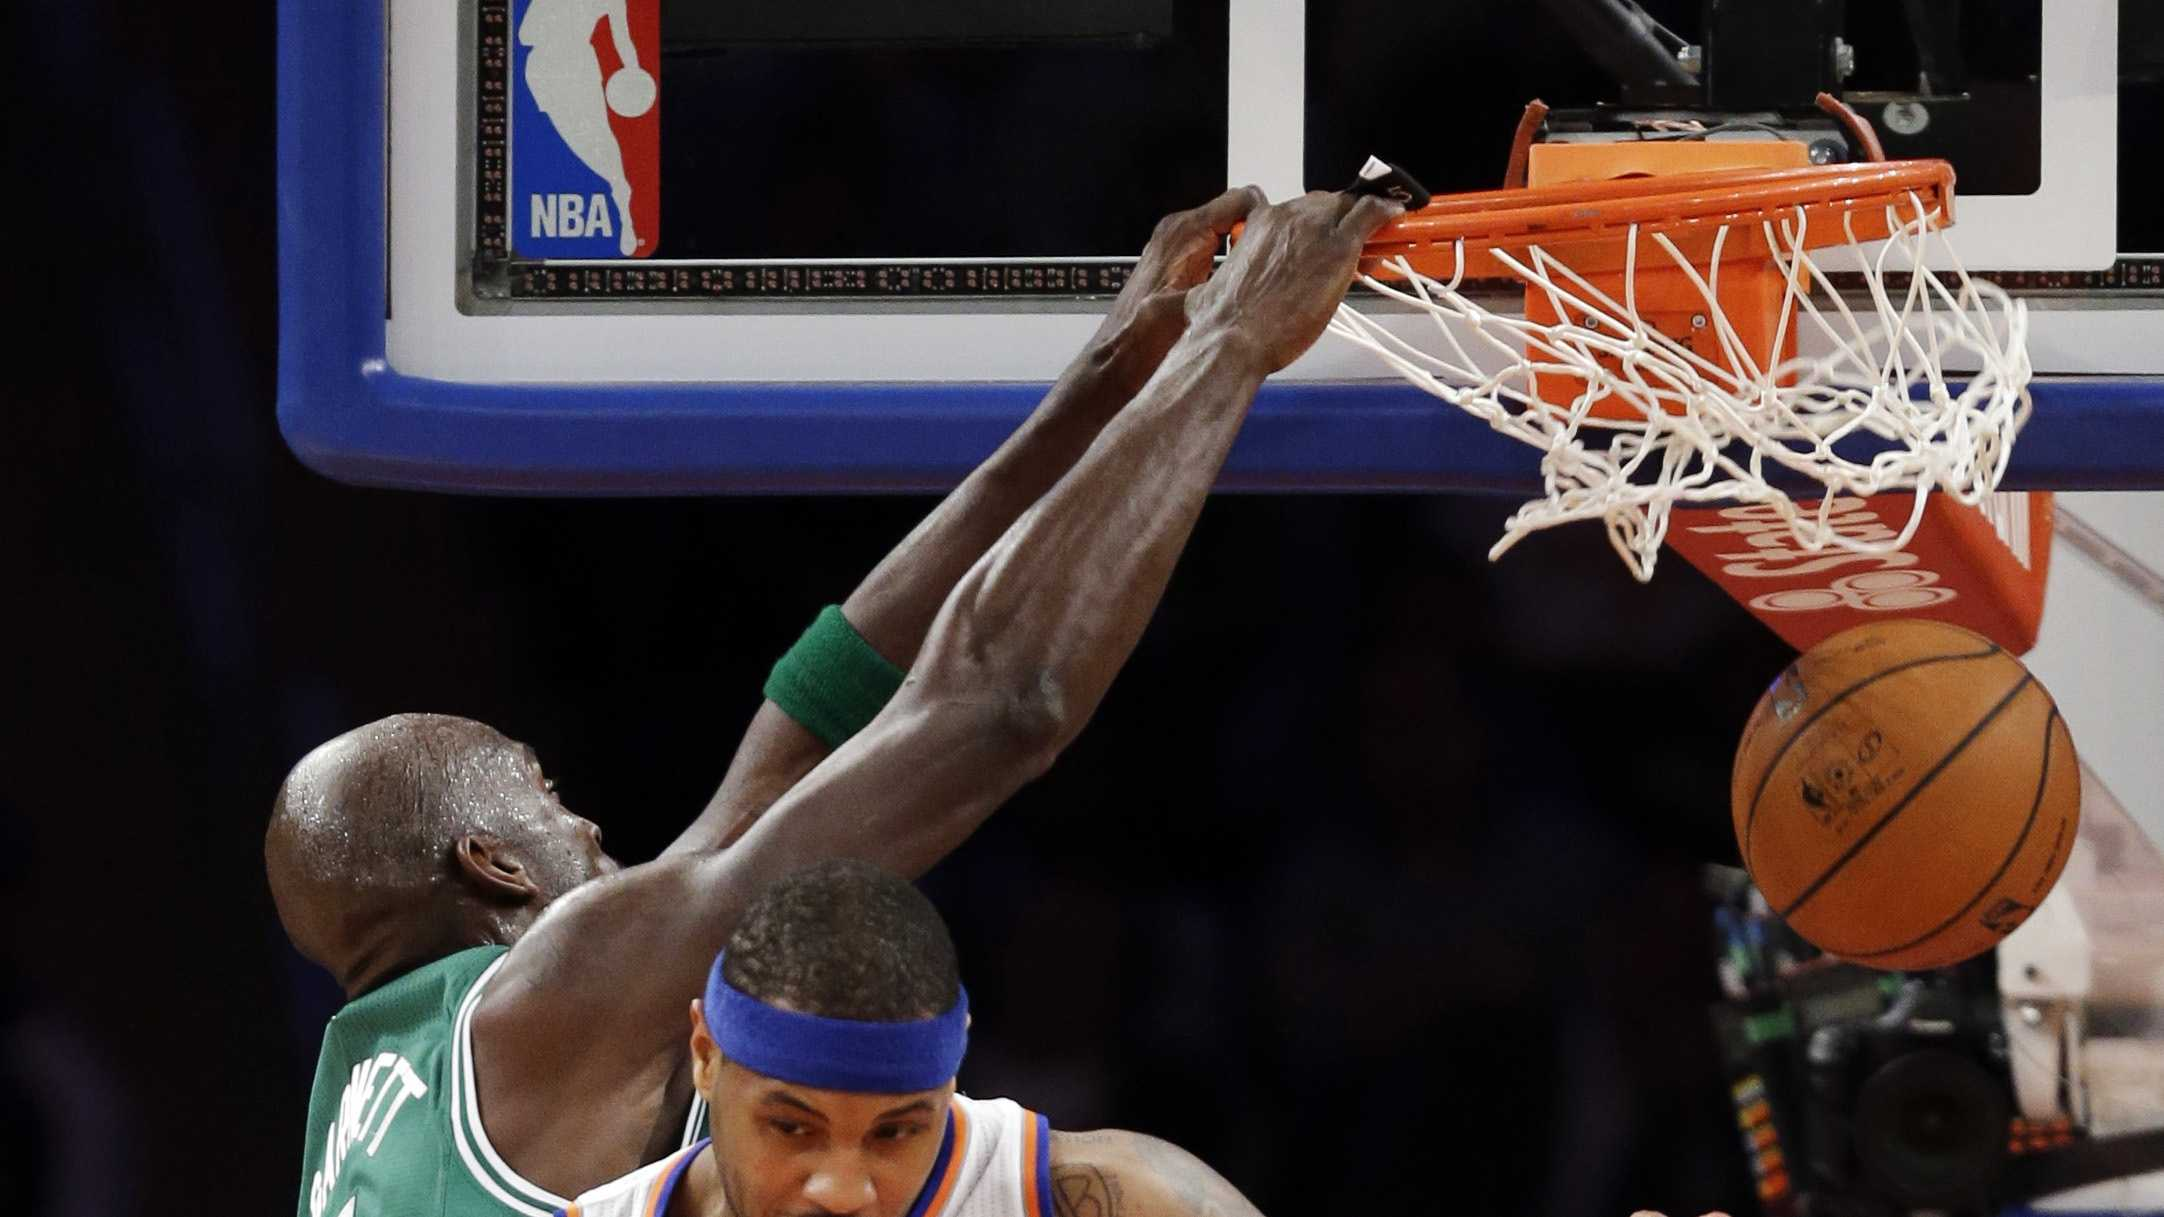 Kevin Garnett dunks against New York Knicks forward Carmelo Anthony in the first half of their NBA basketball game at Madison Square Garden in New York, Monday, Jan. 7, 2013.